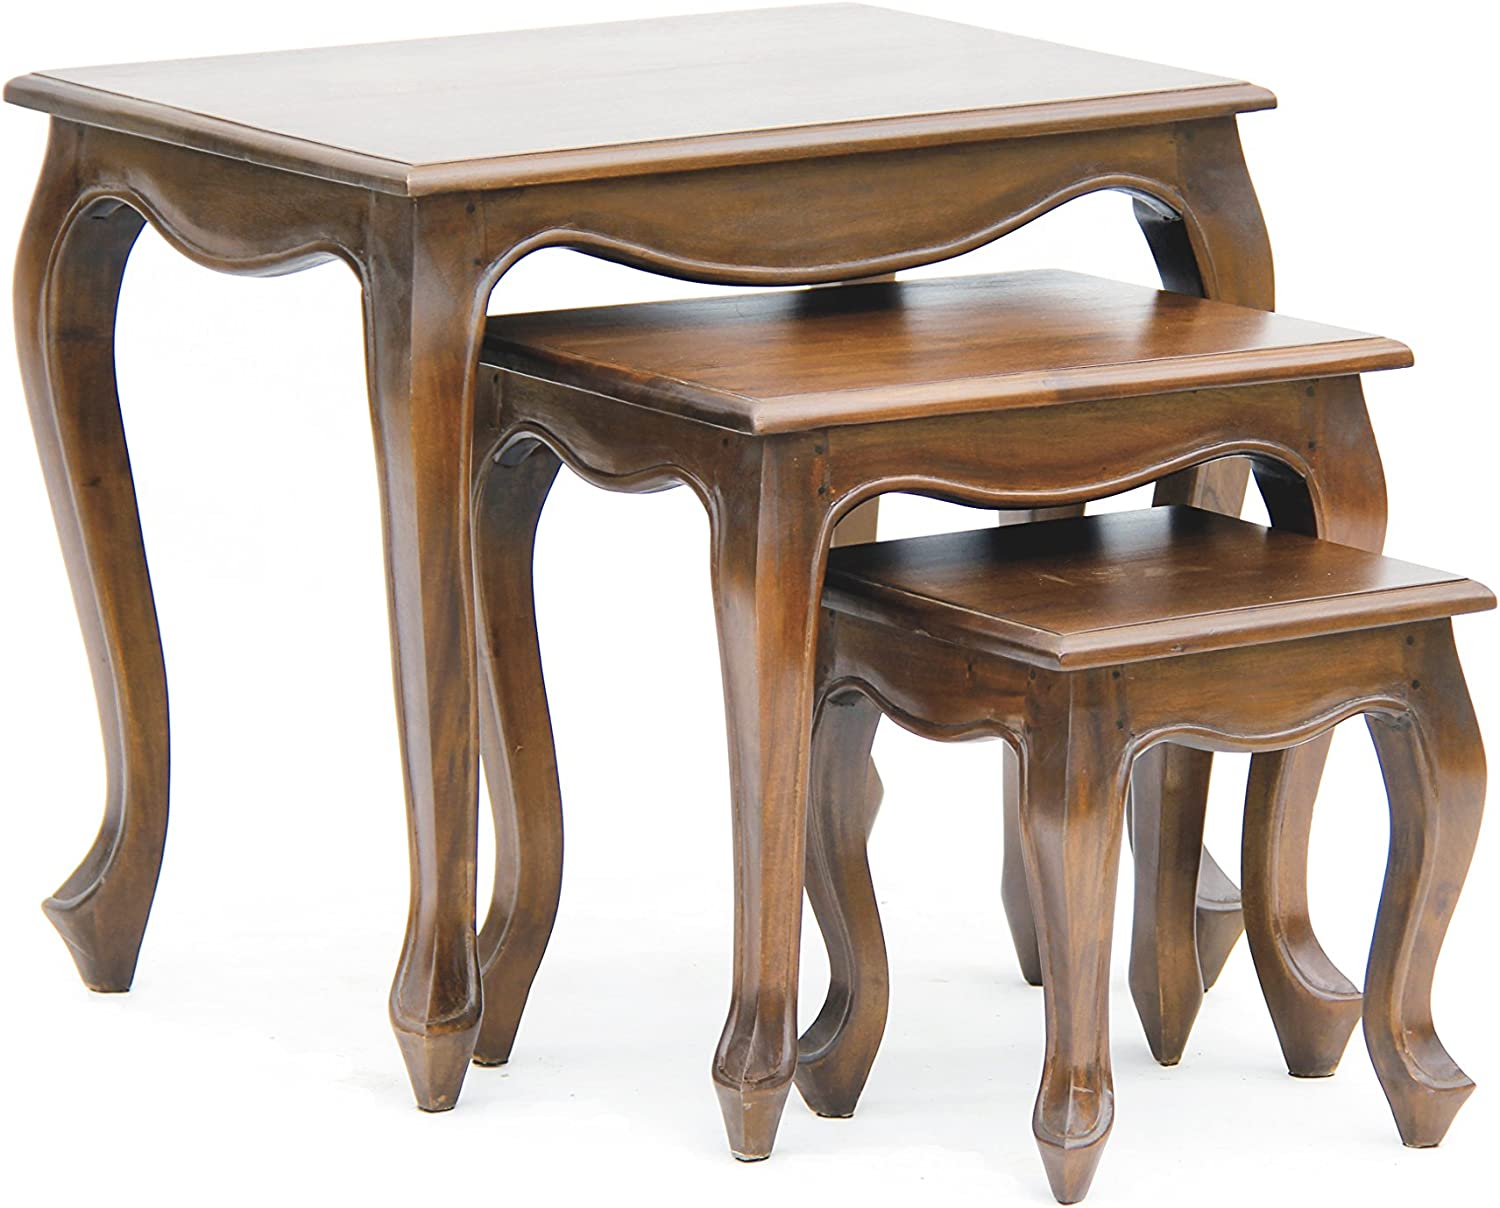 """NES Furniture NES Fine Handcrafted Furniture Solid Mahogany Wood Queen Anne Nesting Tables - 24"""", Light Pecan"""